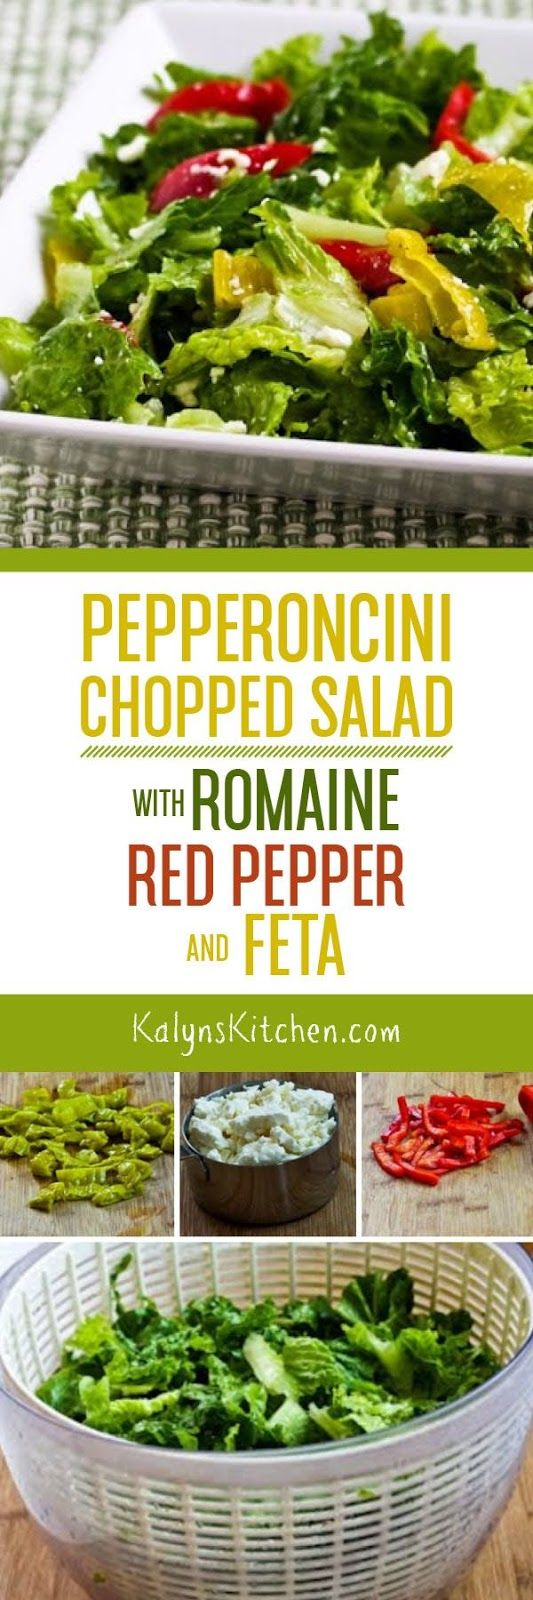 Peperoncini Chopped Salad with Romaine, Red Bell Pepper, and Feta is a huge favorite in my family and I've made it over and over for parties! And this amazing salad is low-carb, low-glycemic, Keto, gluten-free, vegetarian, and South Beach Diet friendly. [found on KalynsKitchen.com]